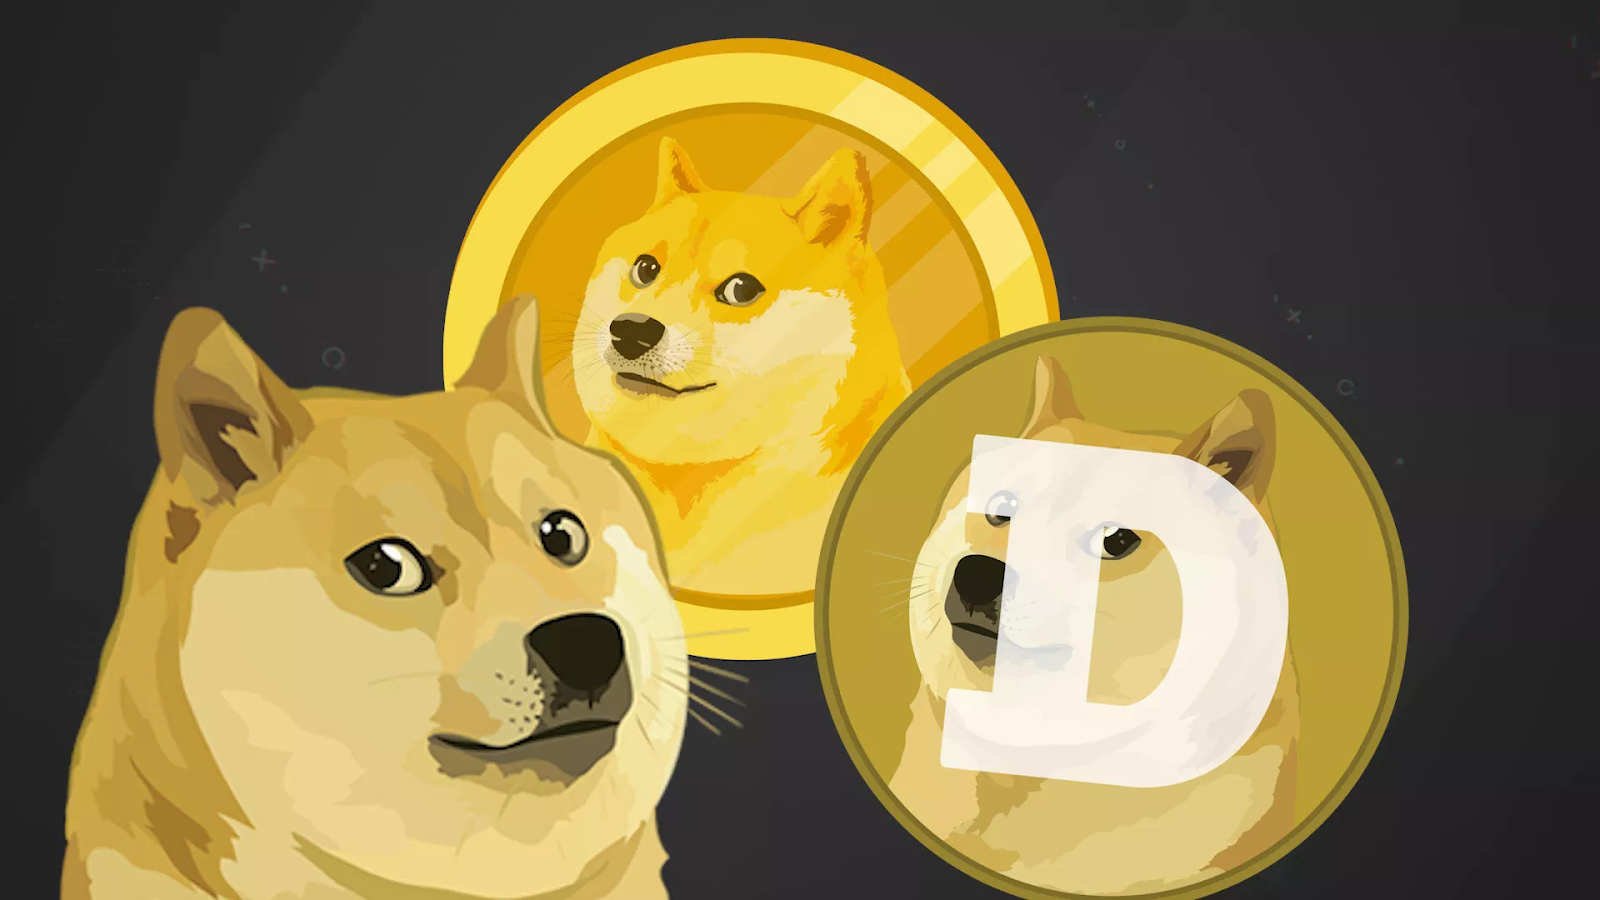 500 dogecoins 3 hours dogecoin doge cryptocurrency mining contract